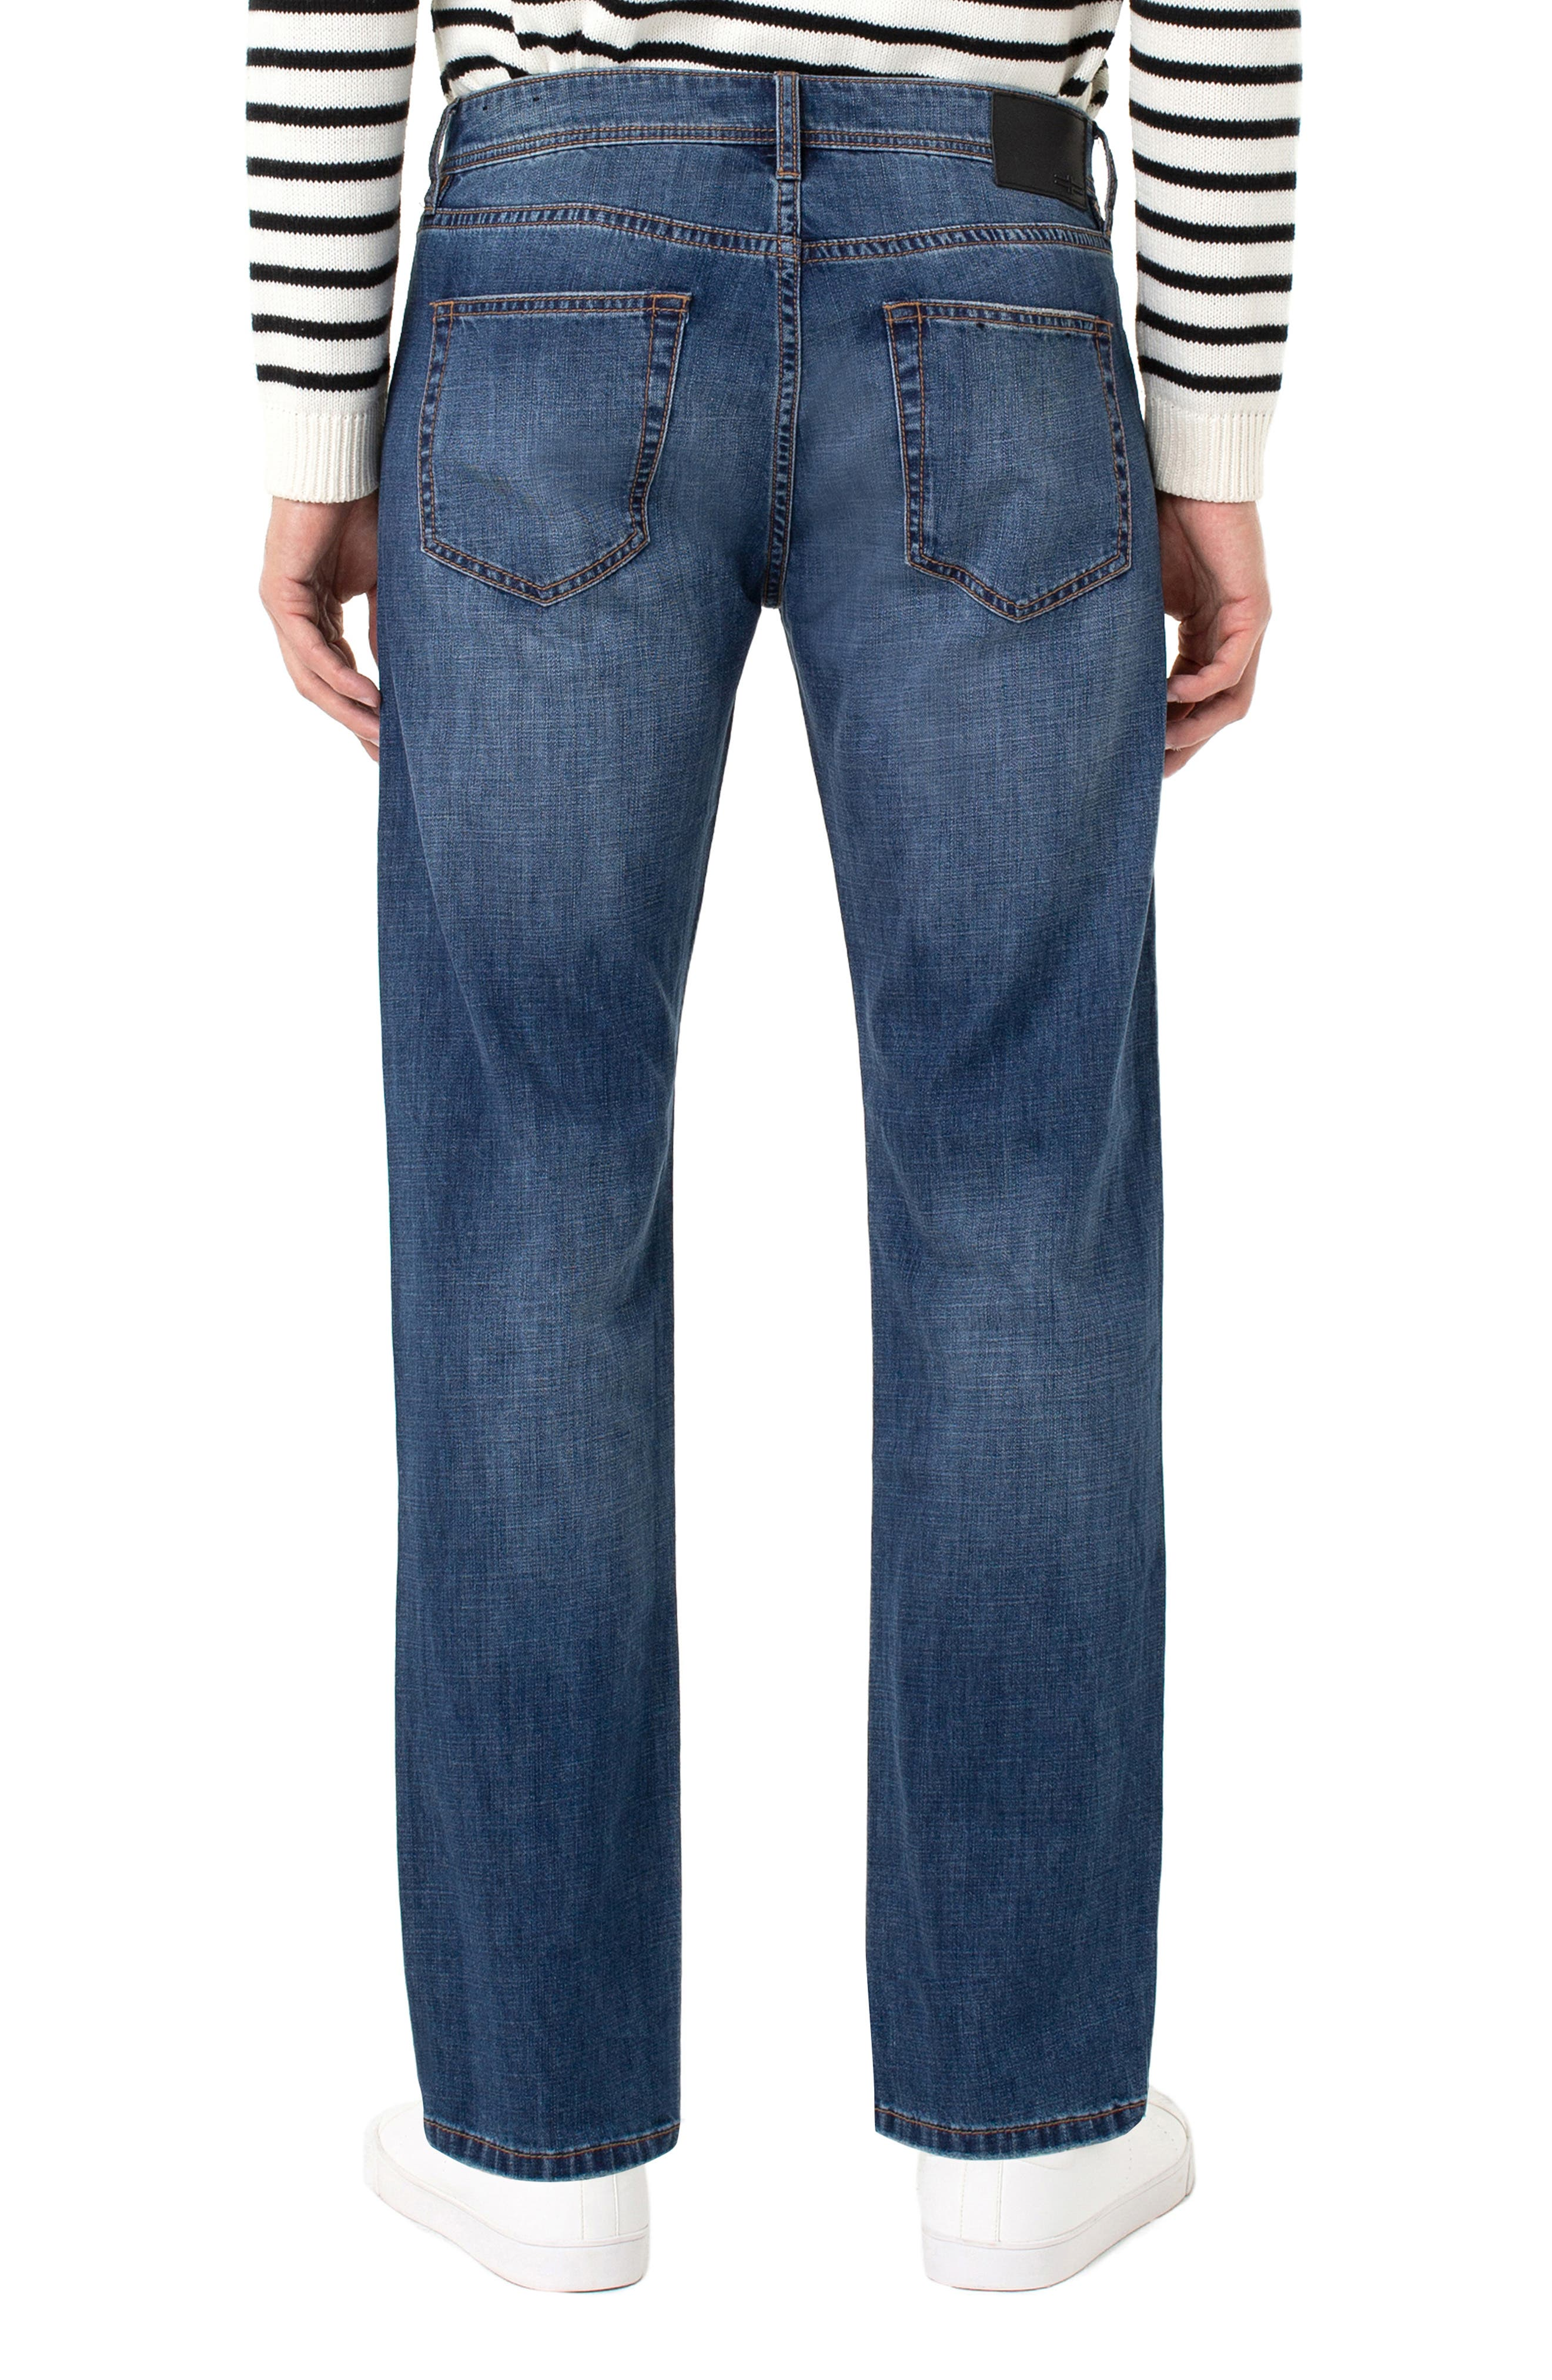 LIVERPOOL, Regent Relaxed Straight Leg Jeans, Alternate thumbnail 2, color, ANDERSON MID